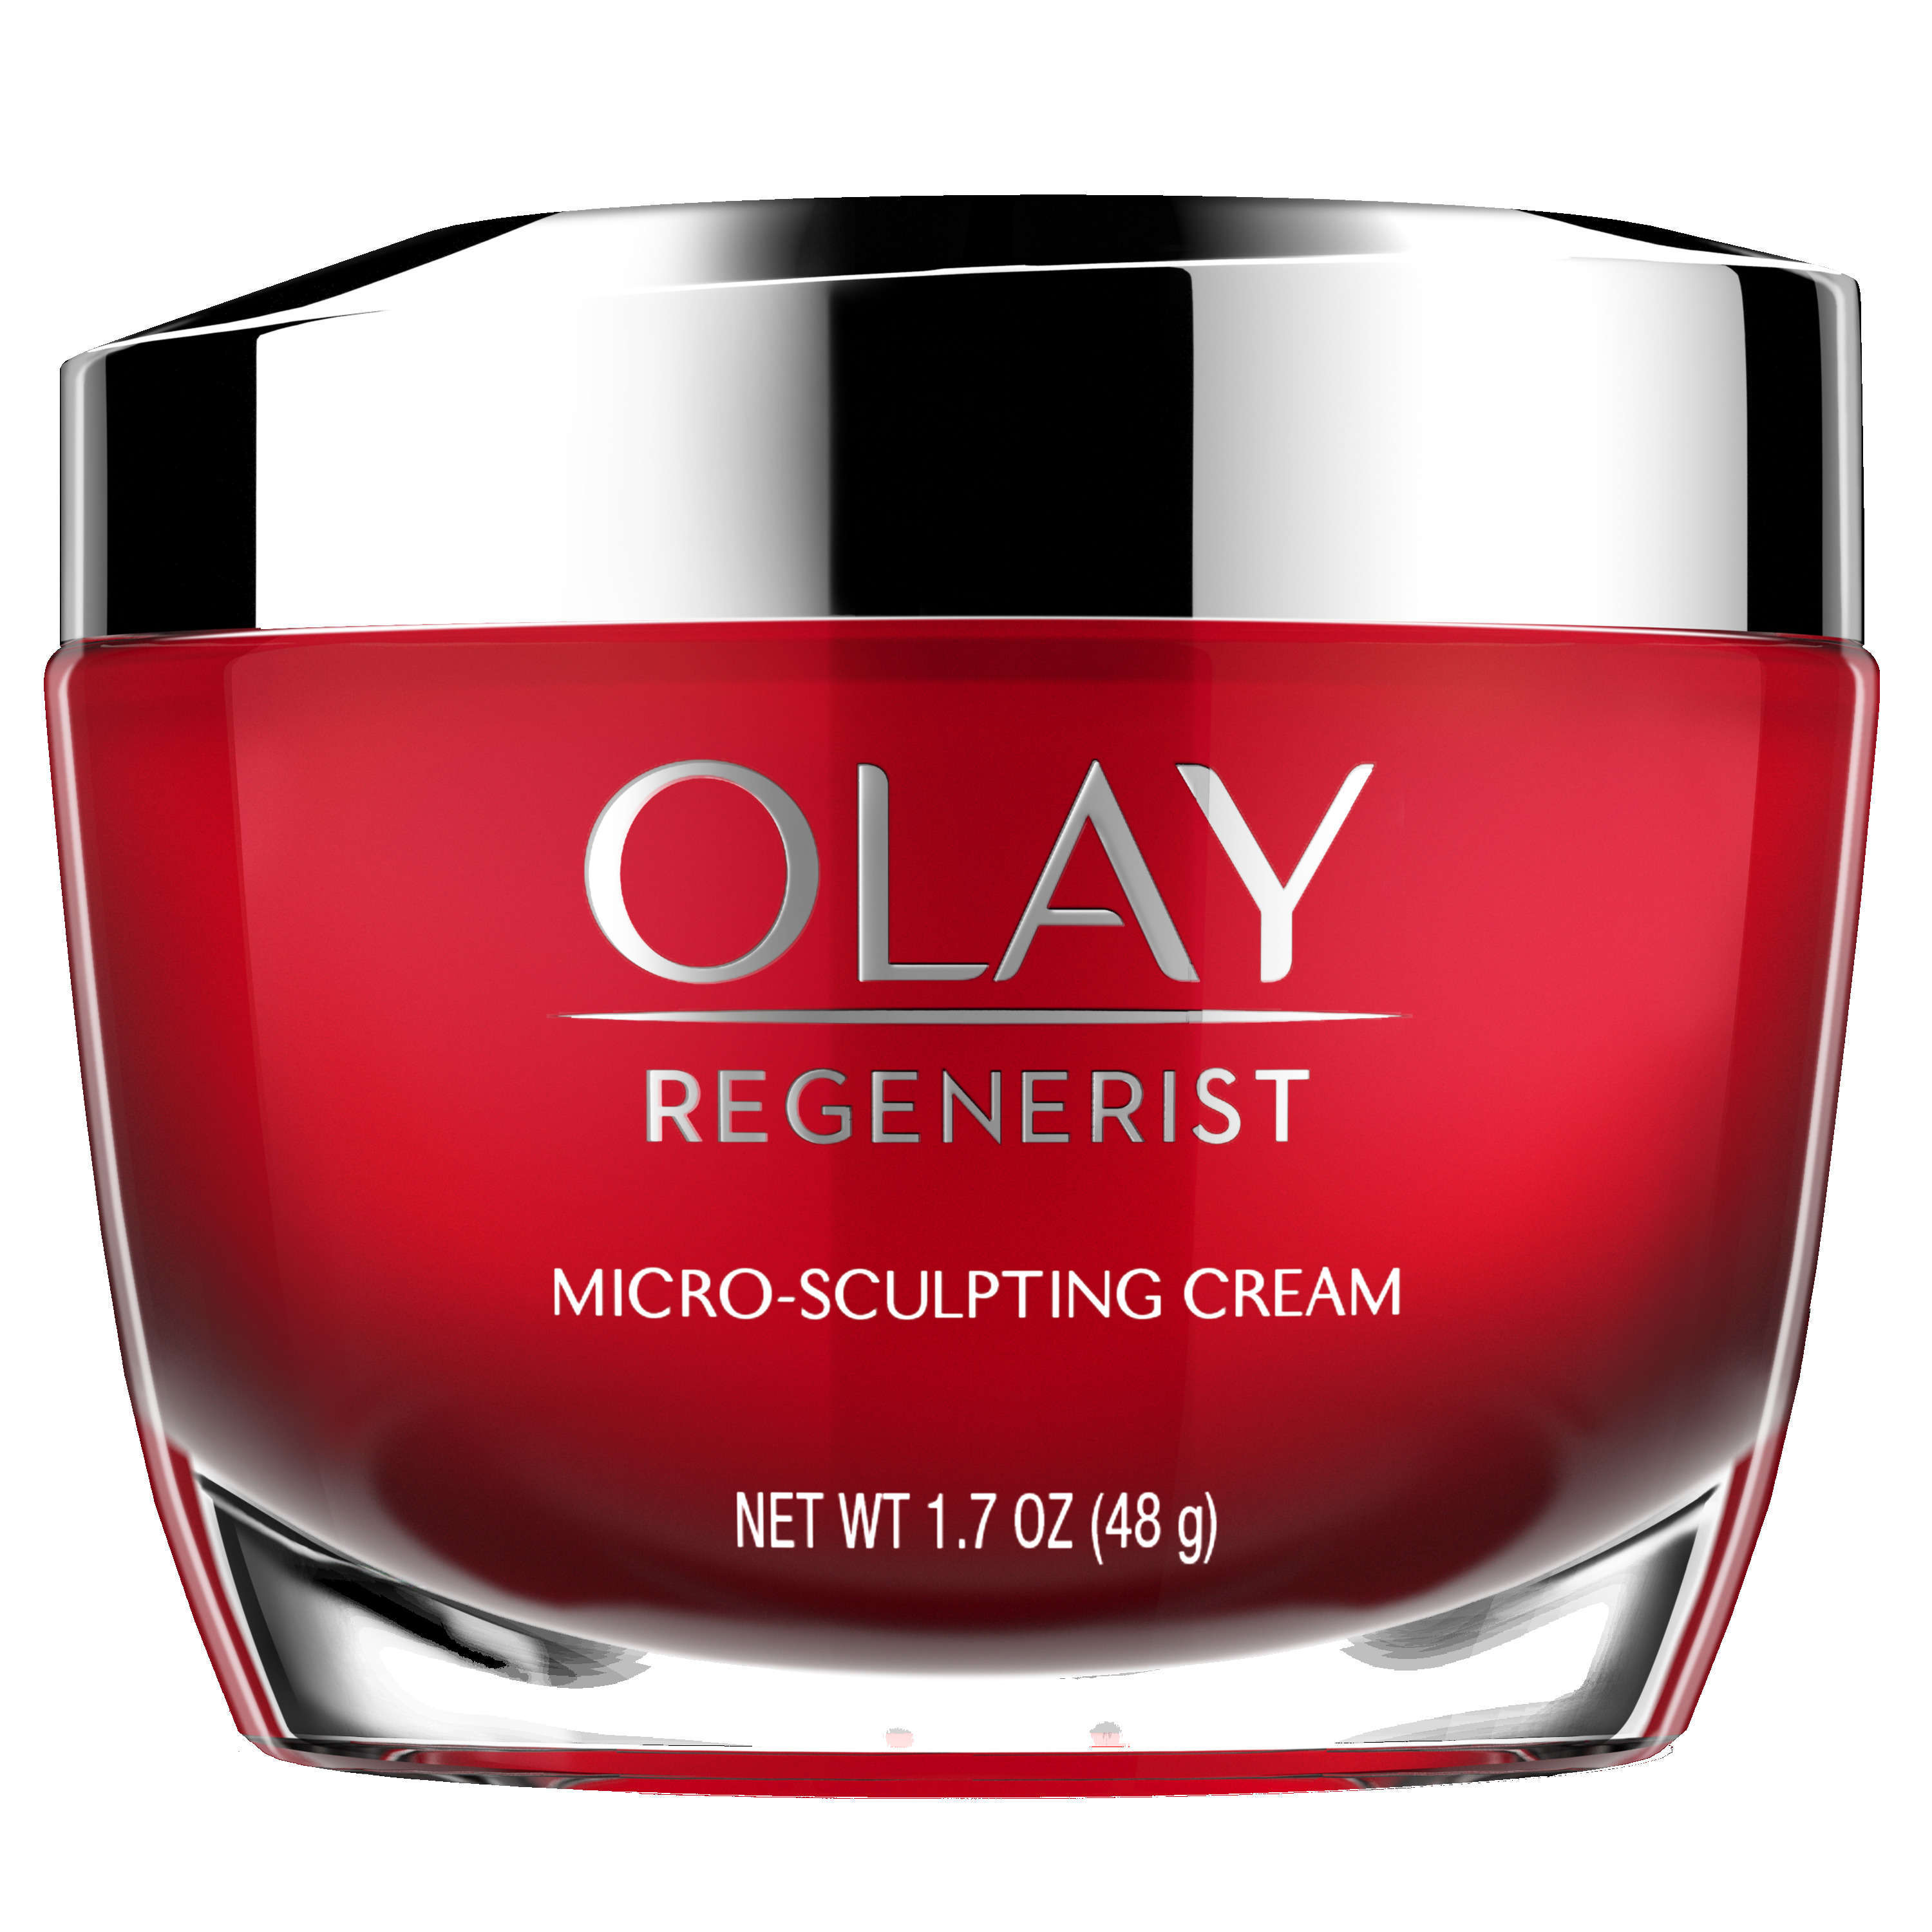 Olay Regenerist Micro-Sculpting Cream Face Moisturizer, 1.7 oz